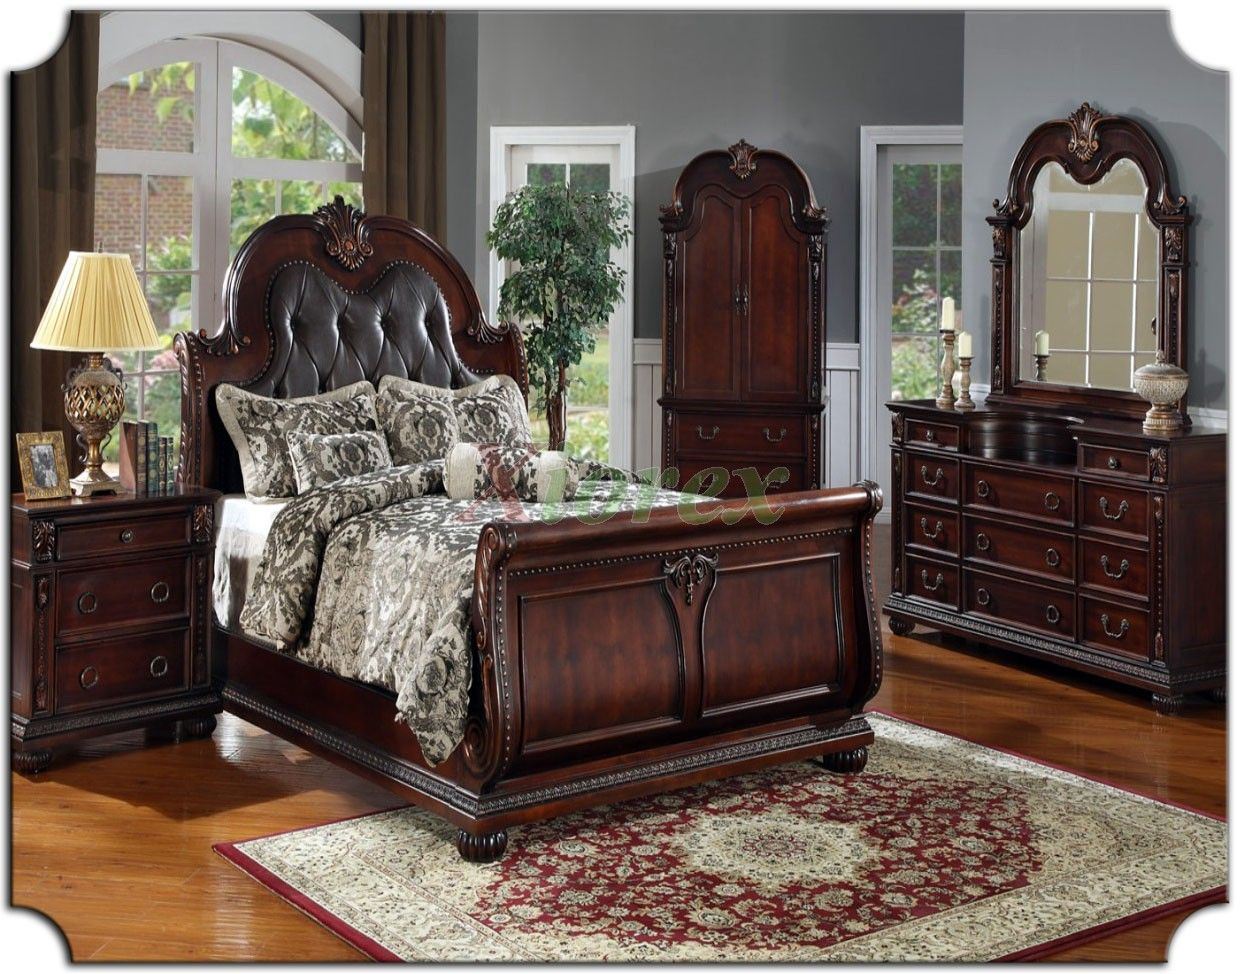 King size sleigh bedroom sets sleigh bedroom furniture - King size sleigh bed bedroom set ...